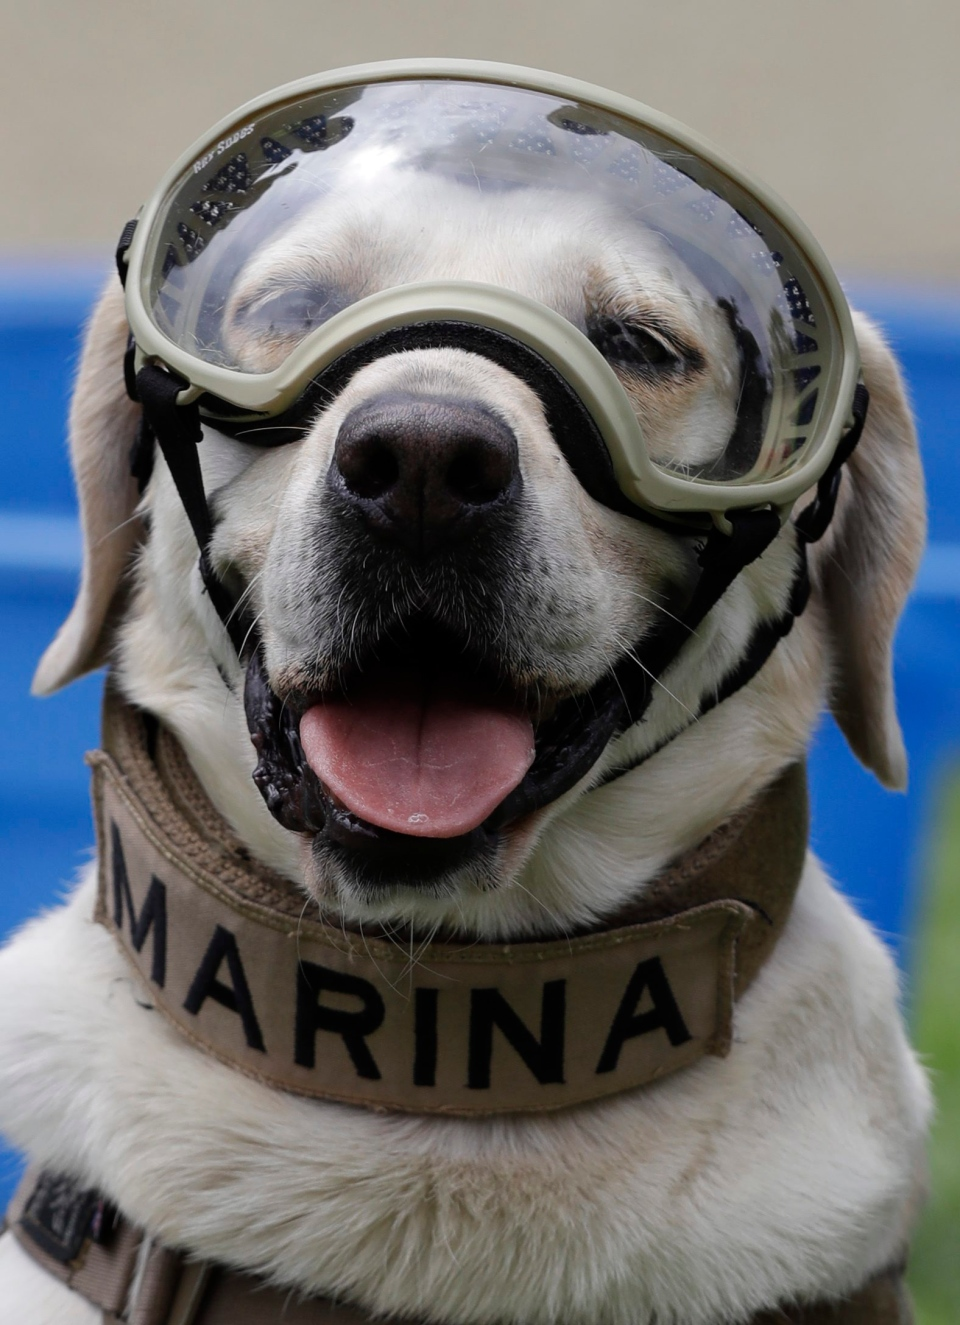 Frida, one of three Marine dogs specially trained to search for people trapped inside collapsed buildings, wears her protective gear during a press event in Mexico City, Thursday, Sept. 28, 2017. (Rebecca Blackwell/AP Photo)